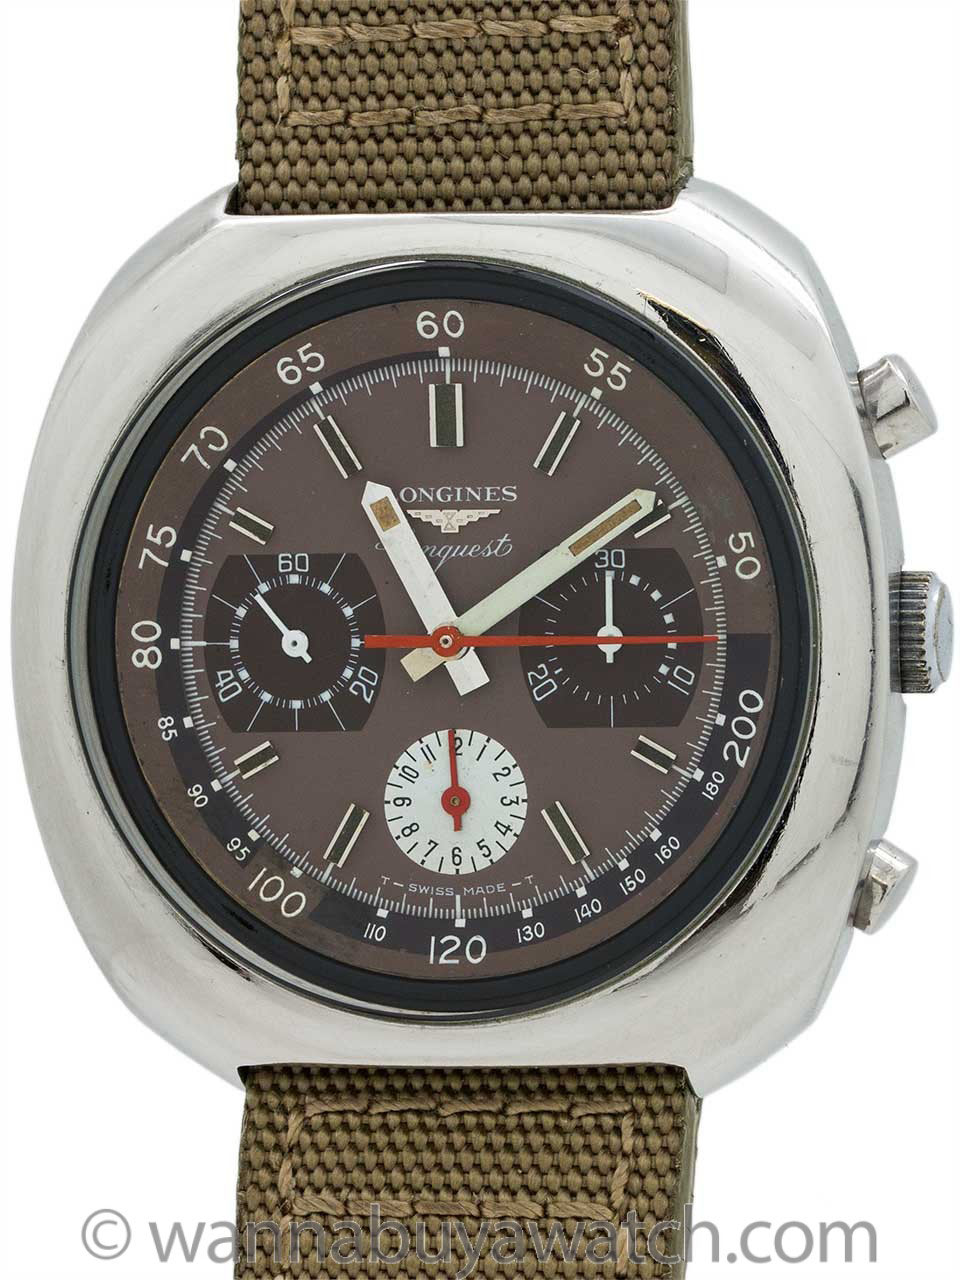 Longines Conquest Cushion Shaped Chronograph circa 1970